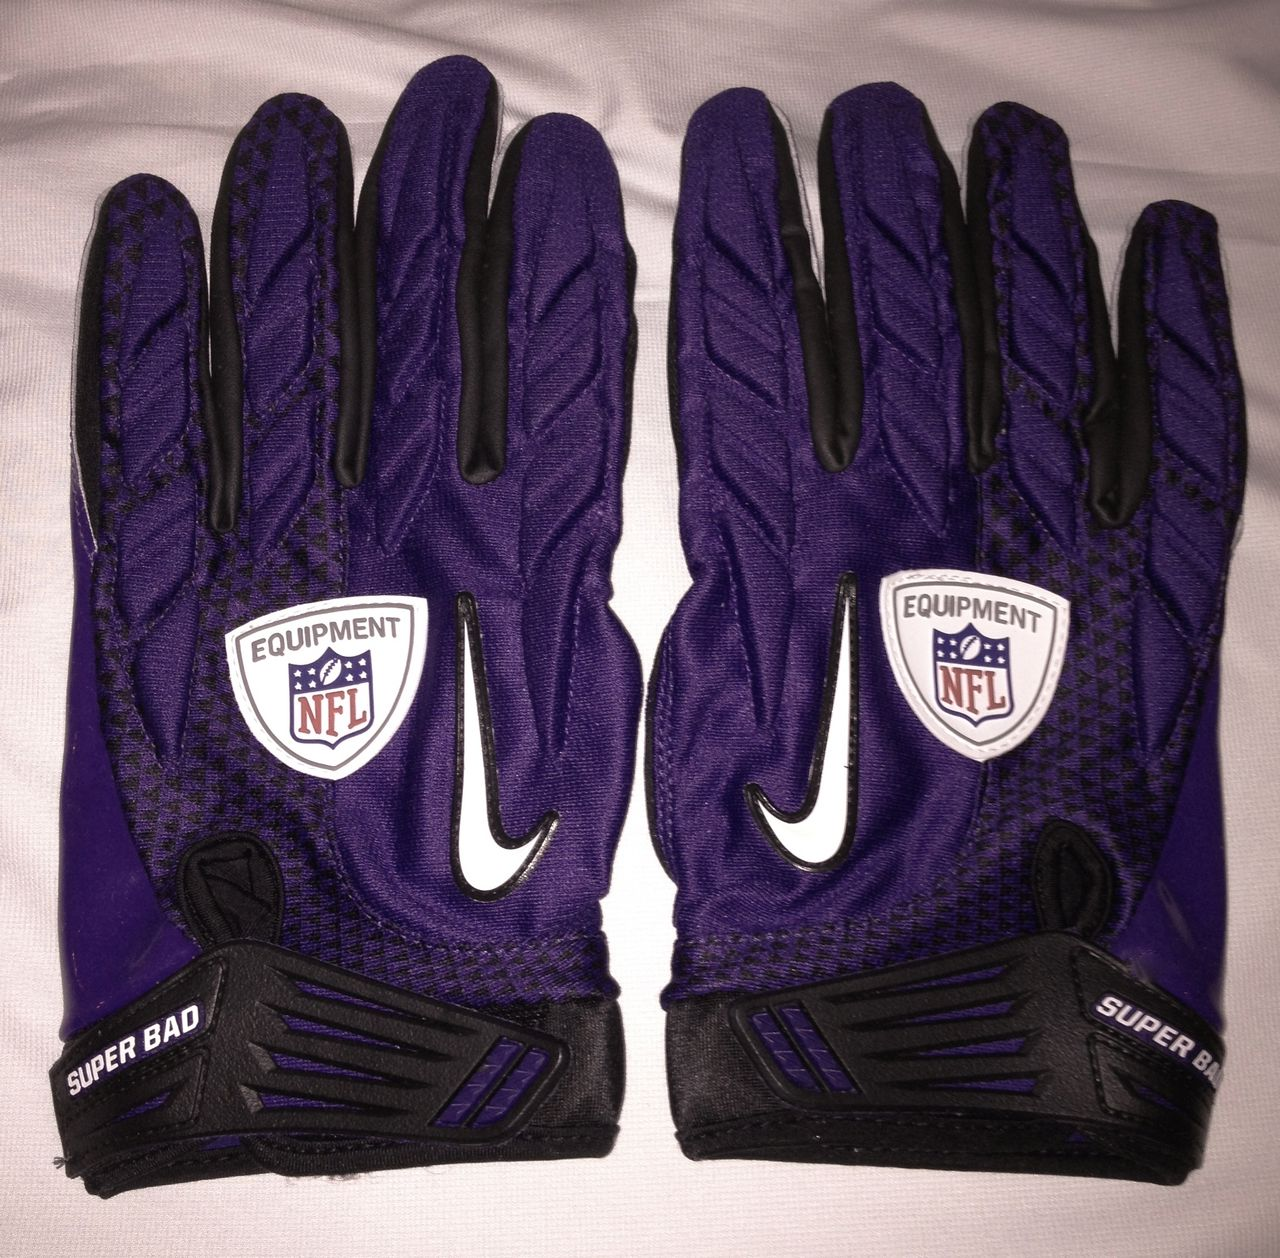 Nike Football Gloves: NEW Mens 3XL NIKE SUPERBAD SG NFL Equipment PURPLE